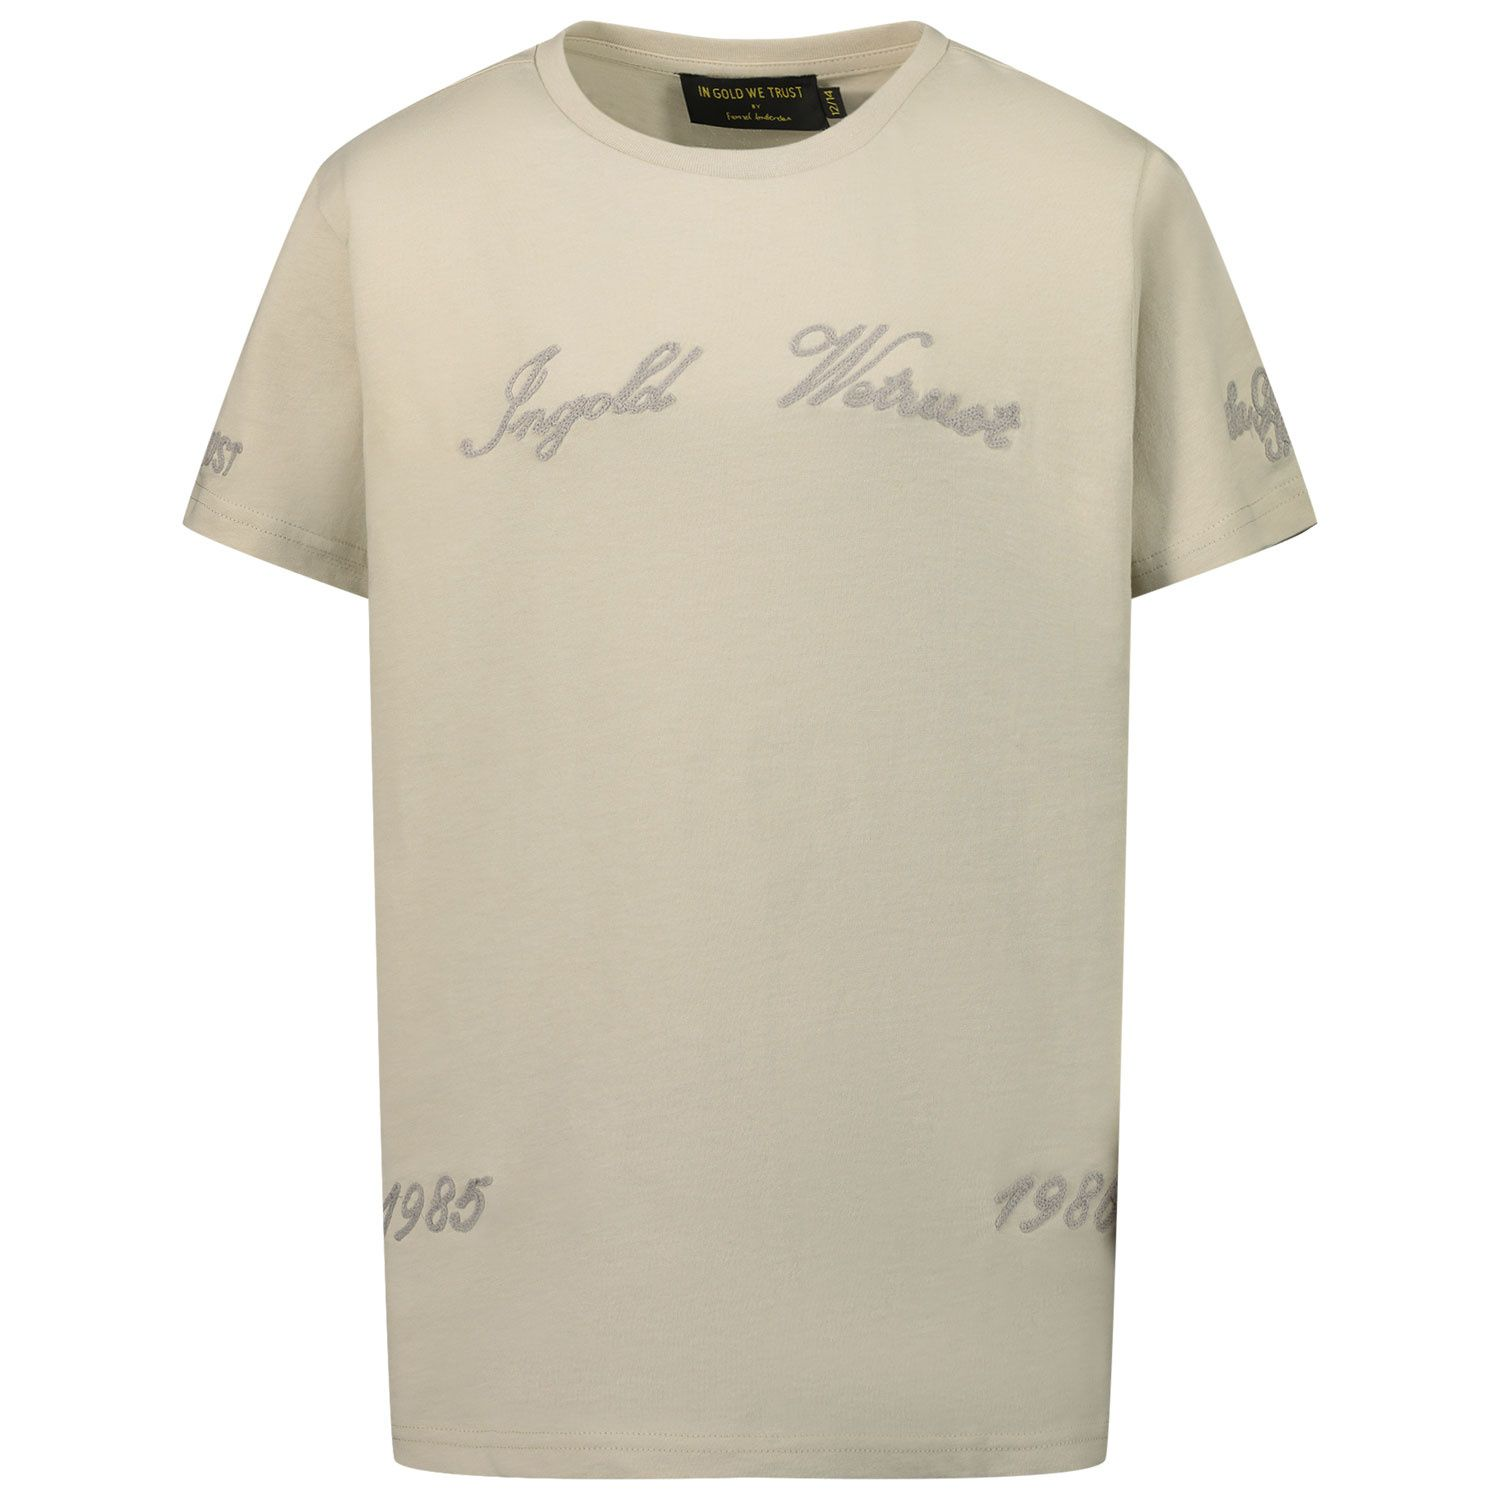 Picture of in Gold We Trust CHAIN EMBROIDERY SHIRT kids t-shirt light beige